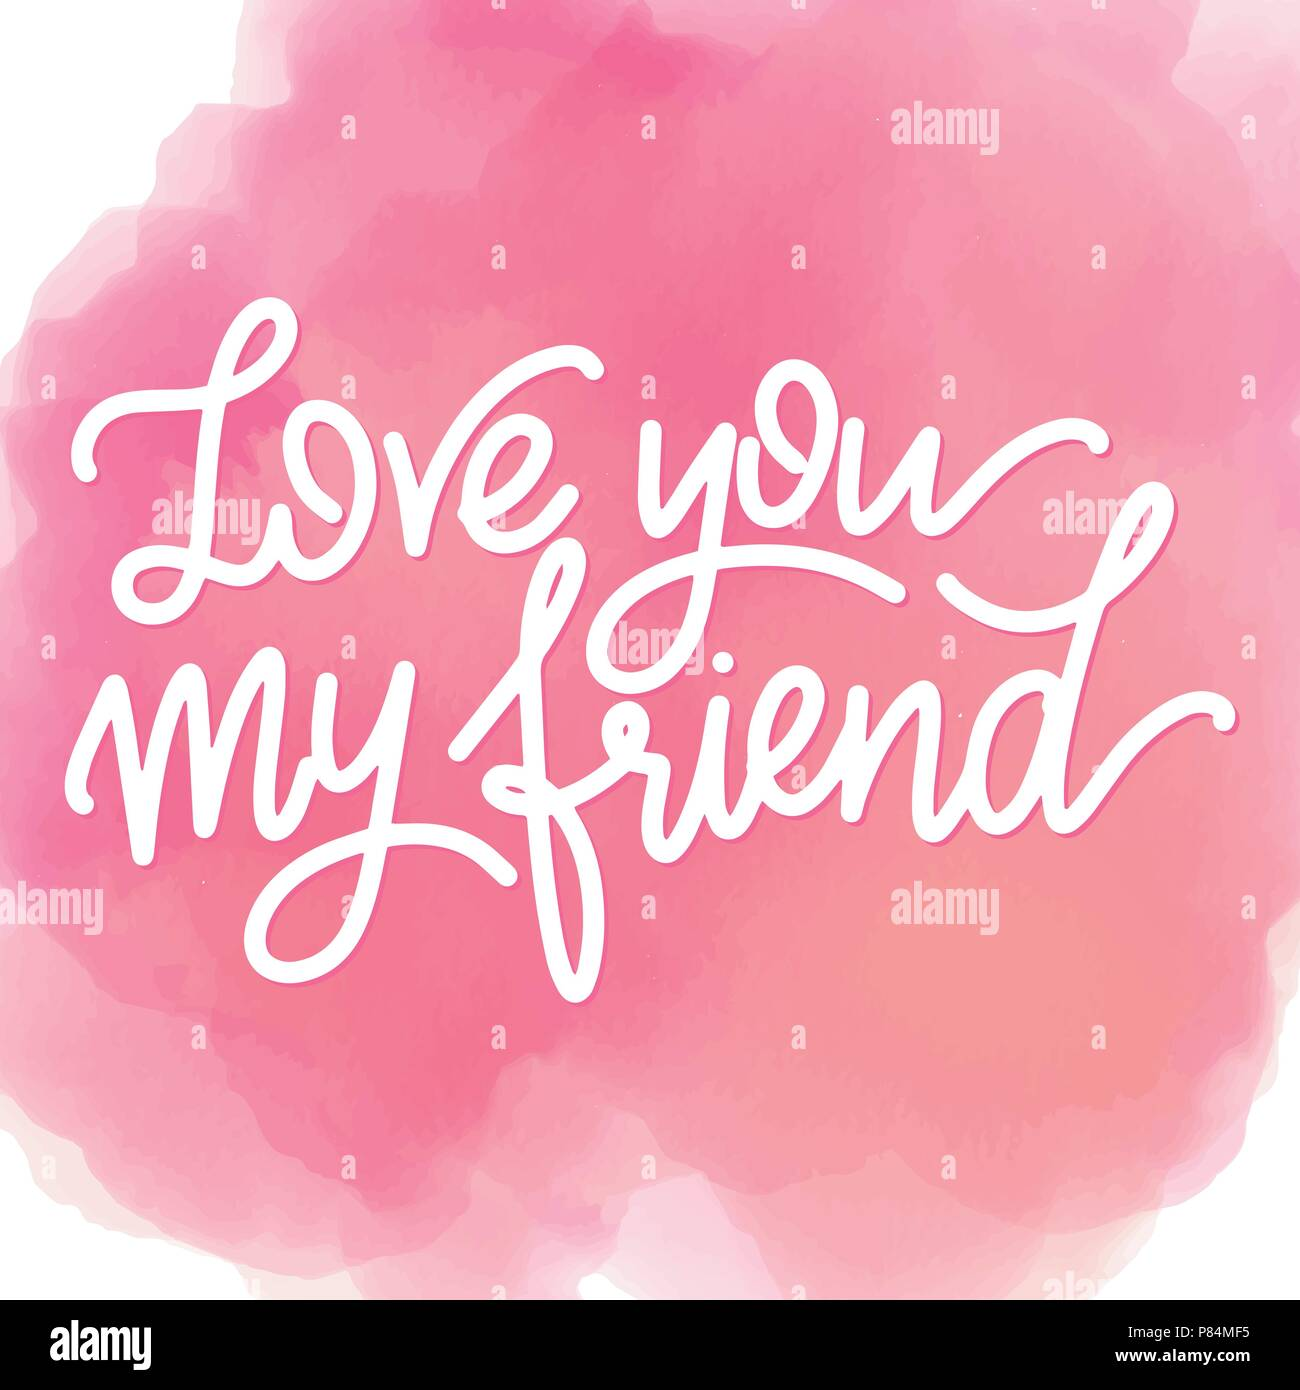 Friendship day hand drawn lettering. Love you my friend. Vector